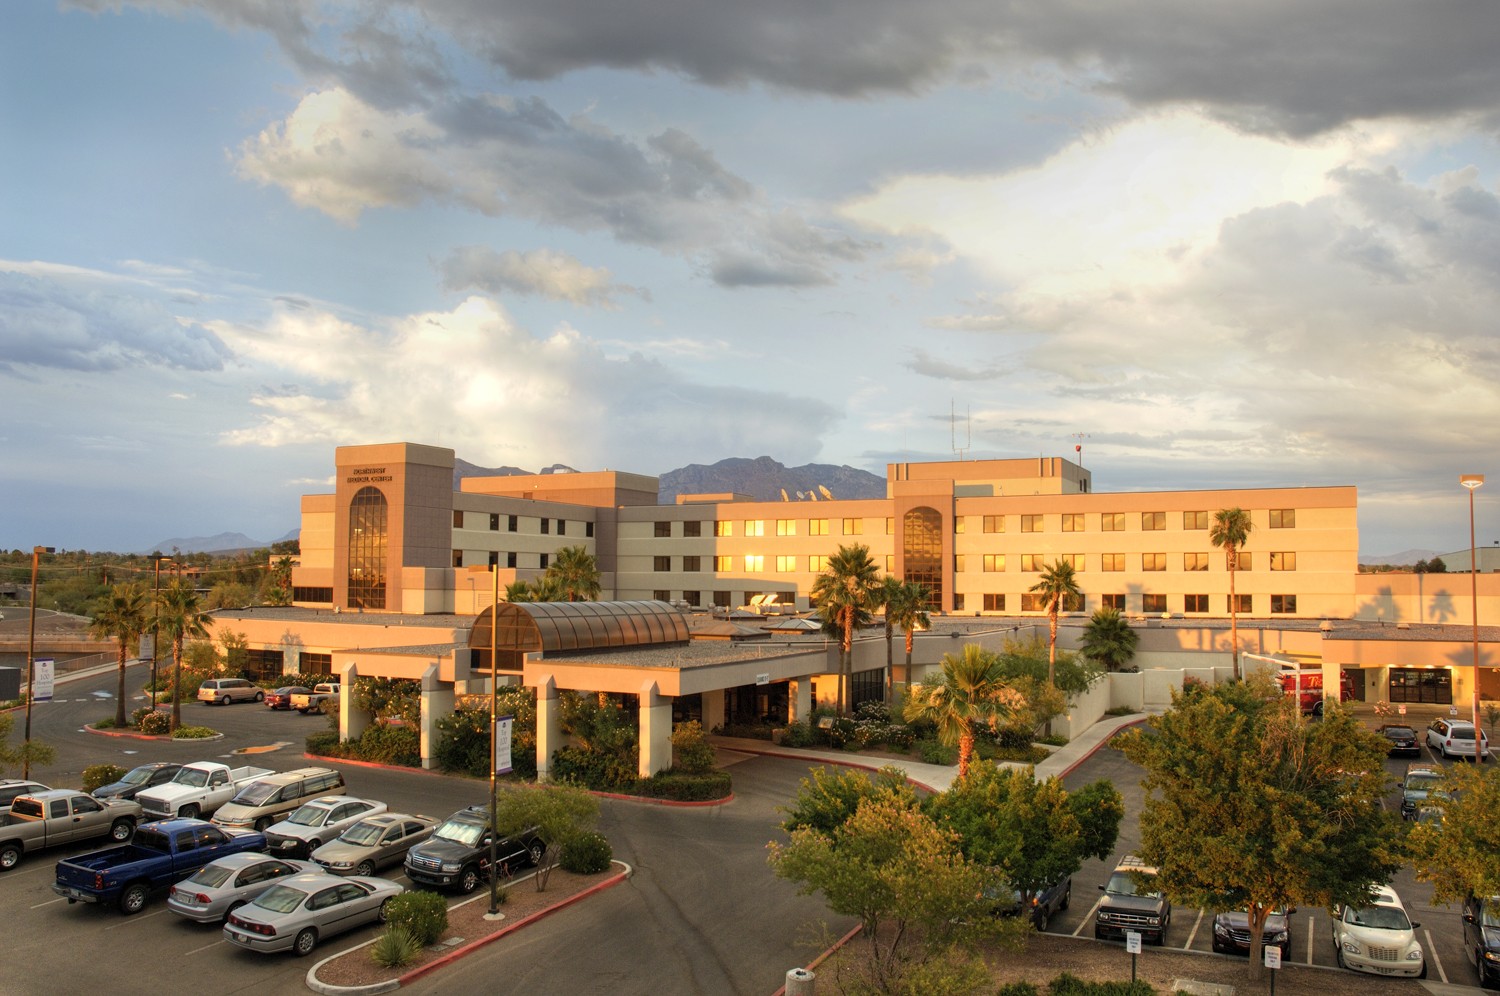 Northwest Medical Center - Tucson